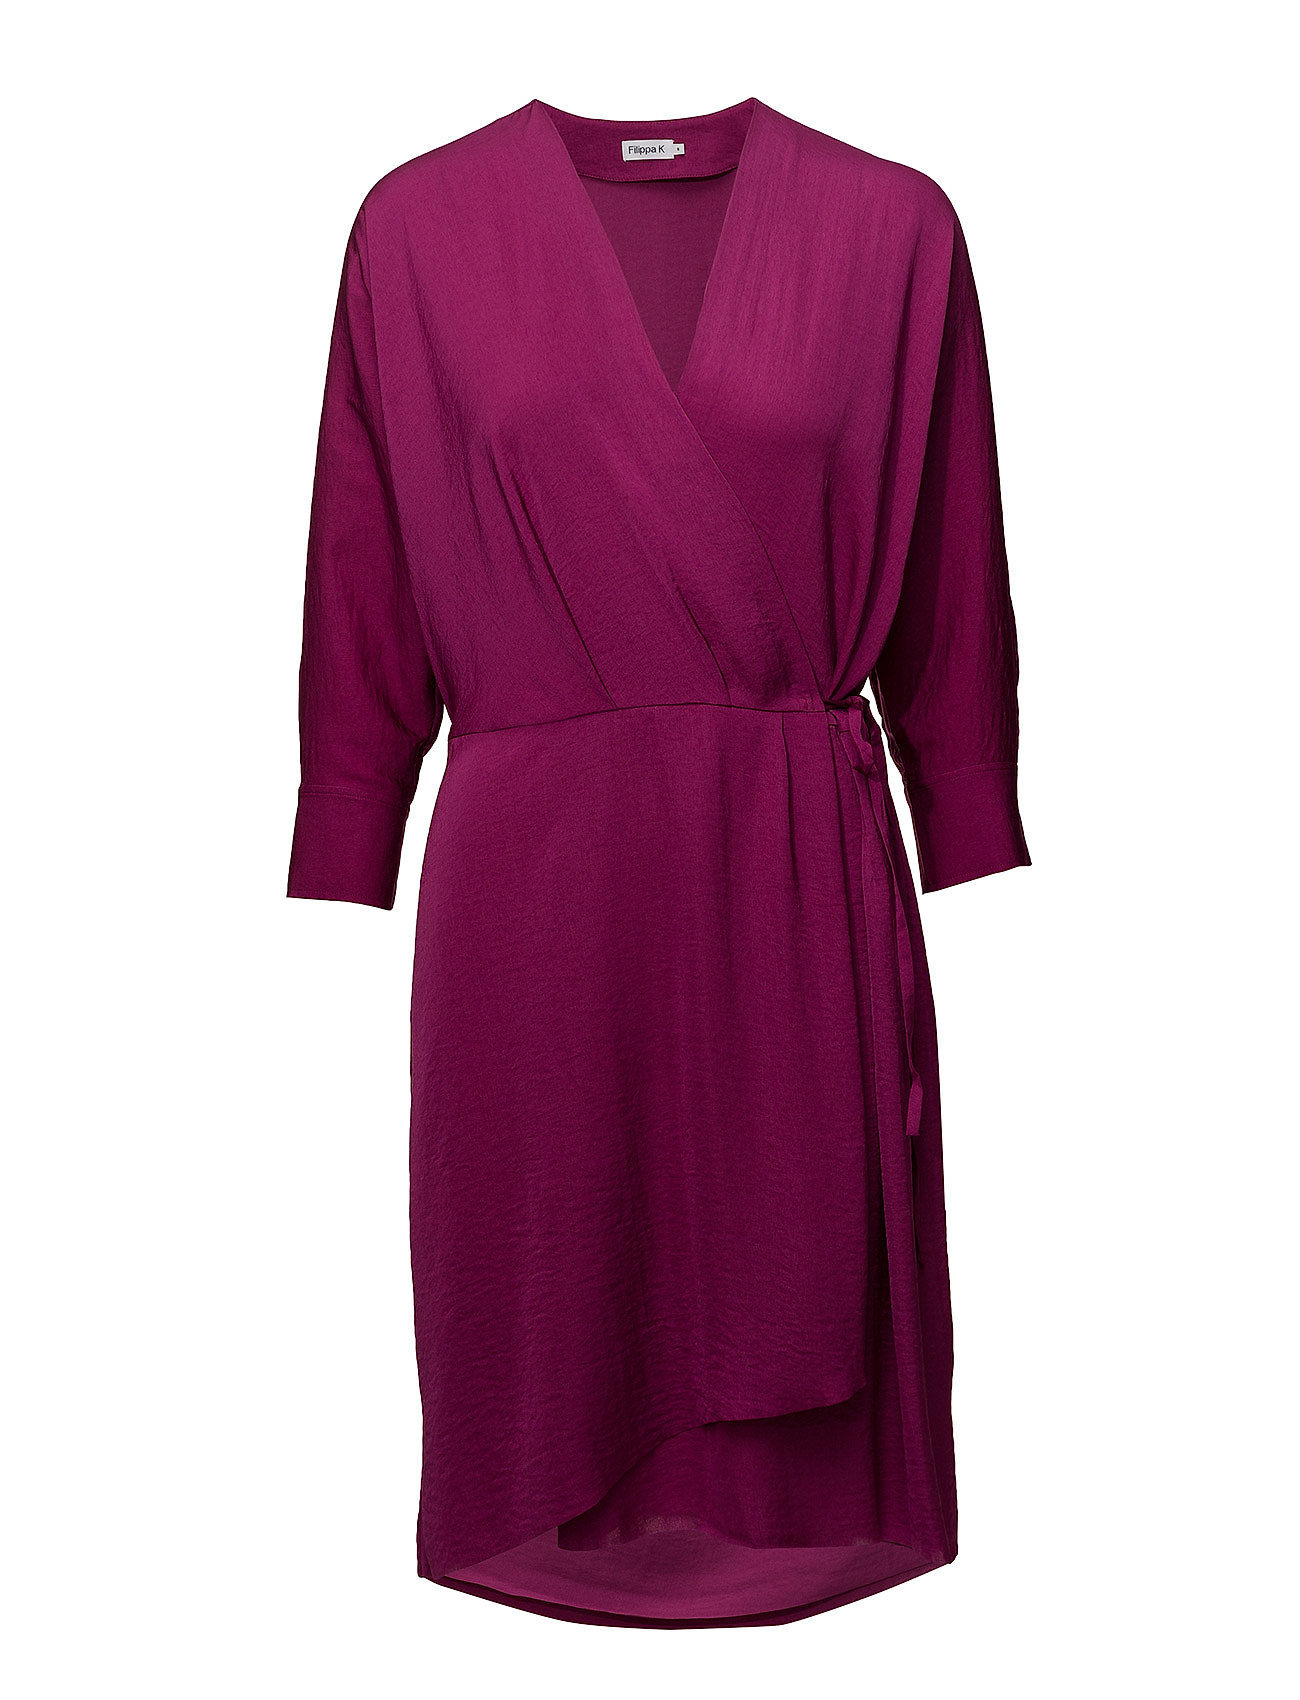 Filippa K Slinky Wrap Dress - ORCHID